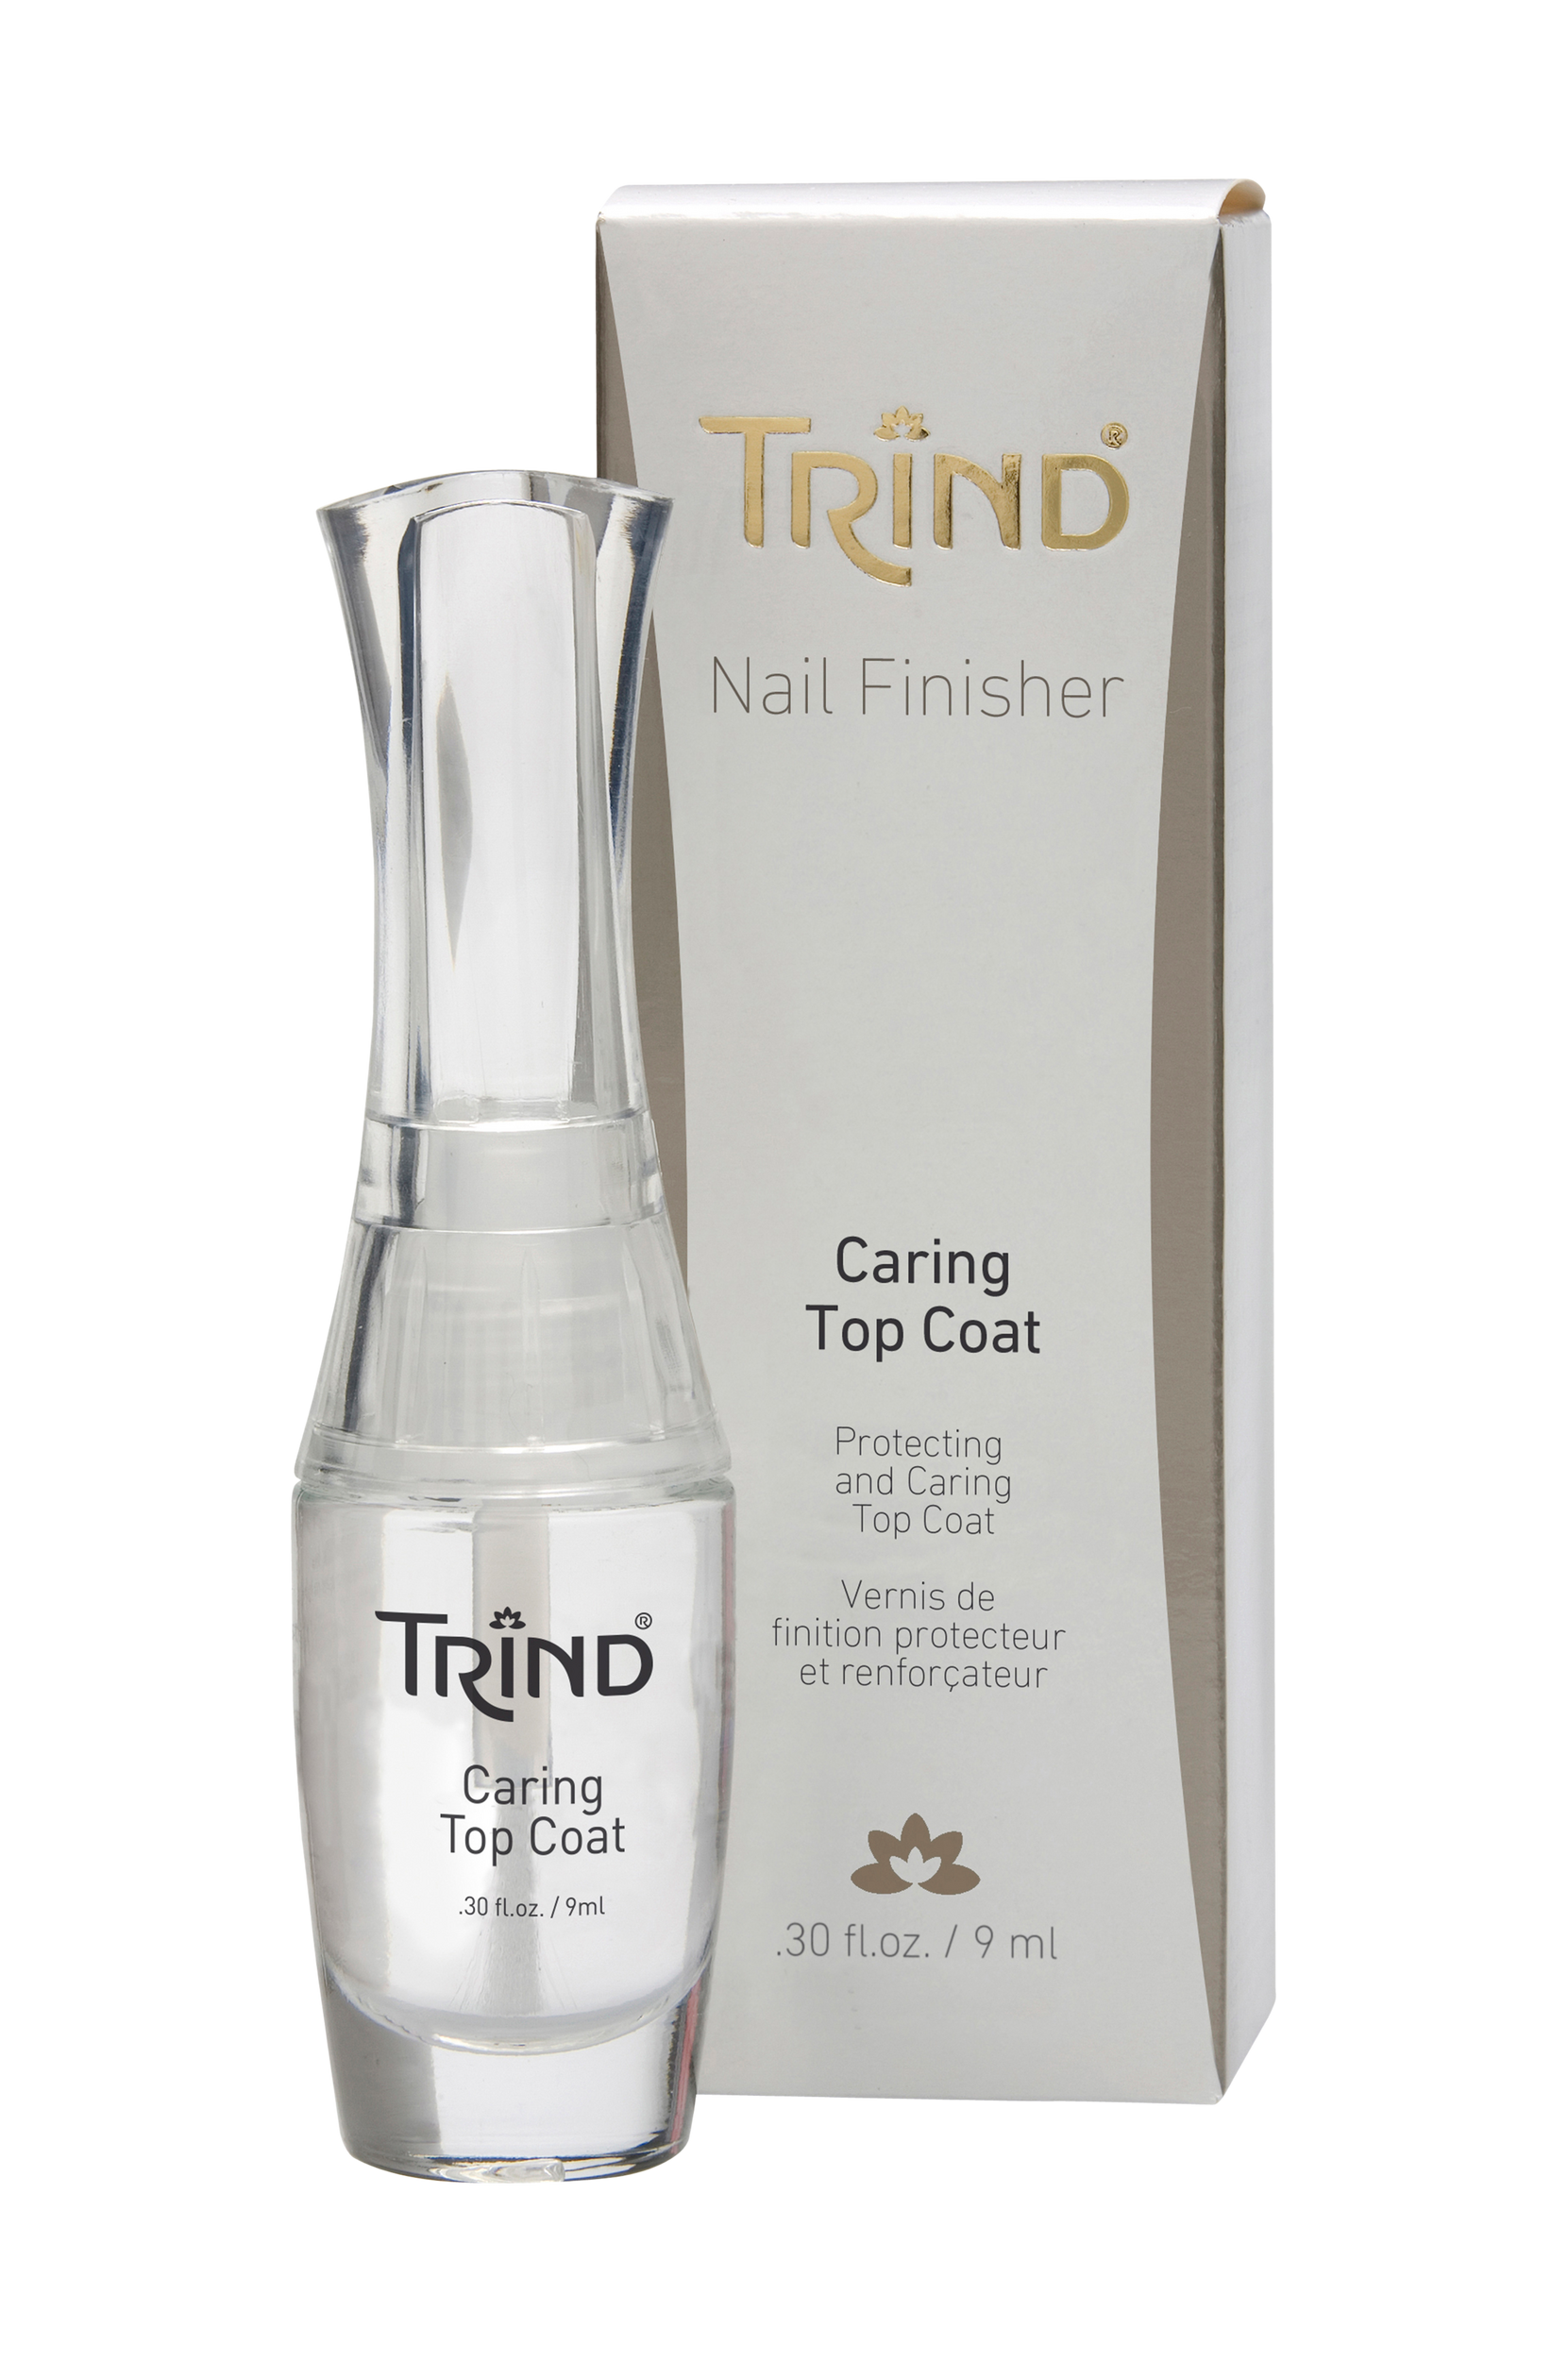 Caring Top Coat